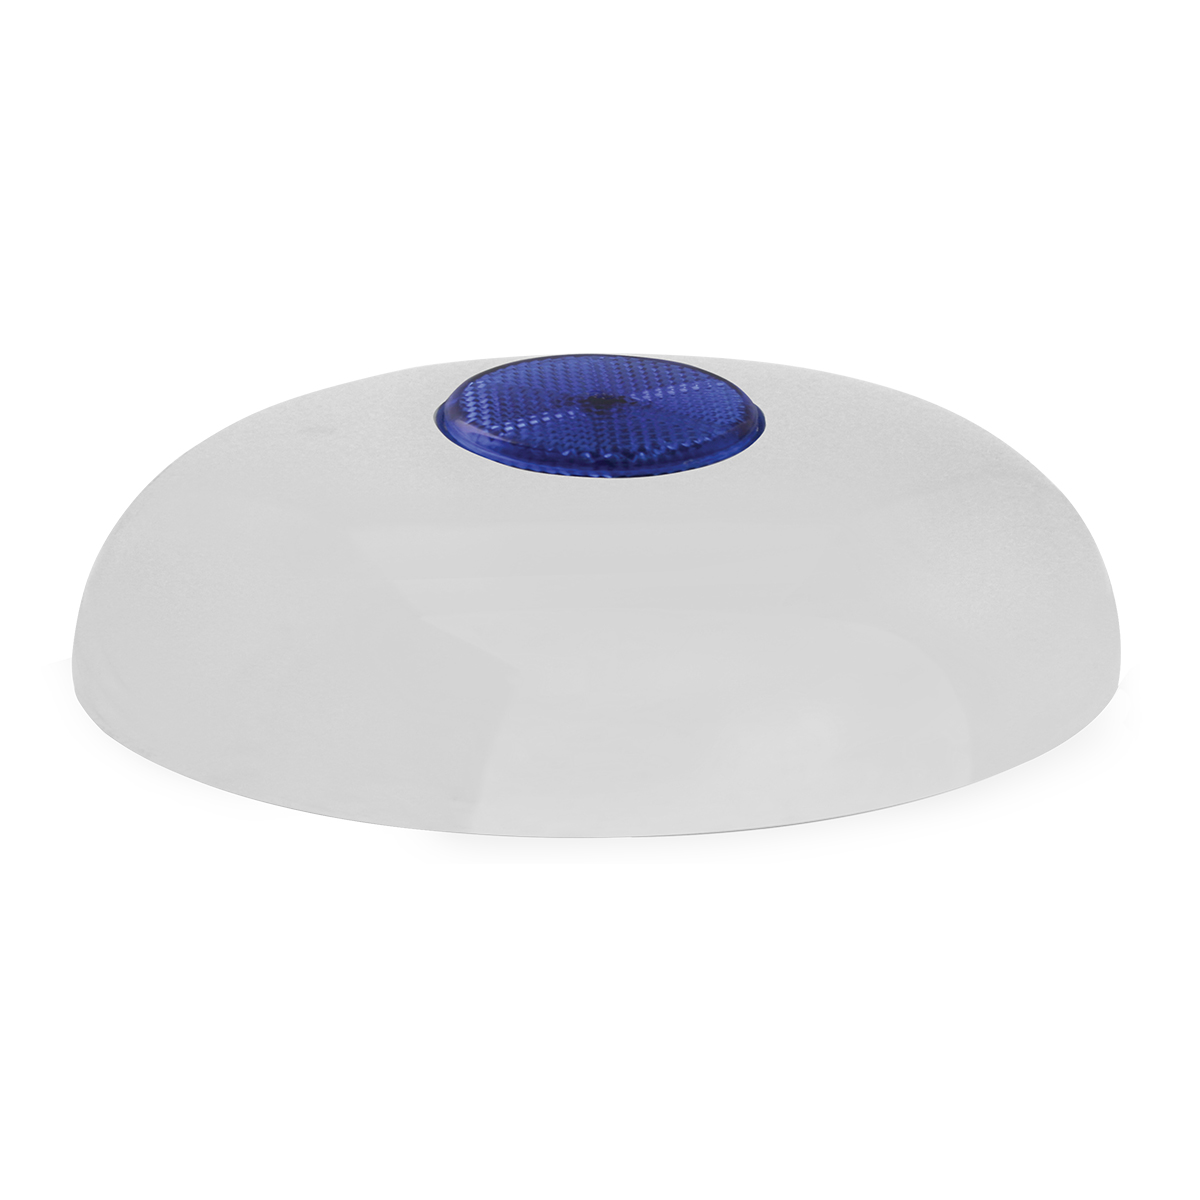 """Chrome Plated Steel Horn Cover with Blue Reflector on Center – 5 ½""""- 6"""""""